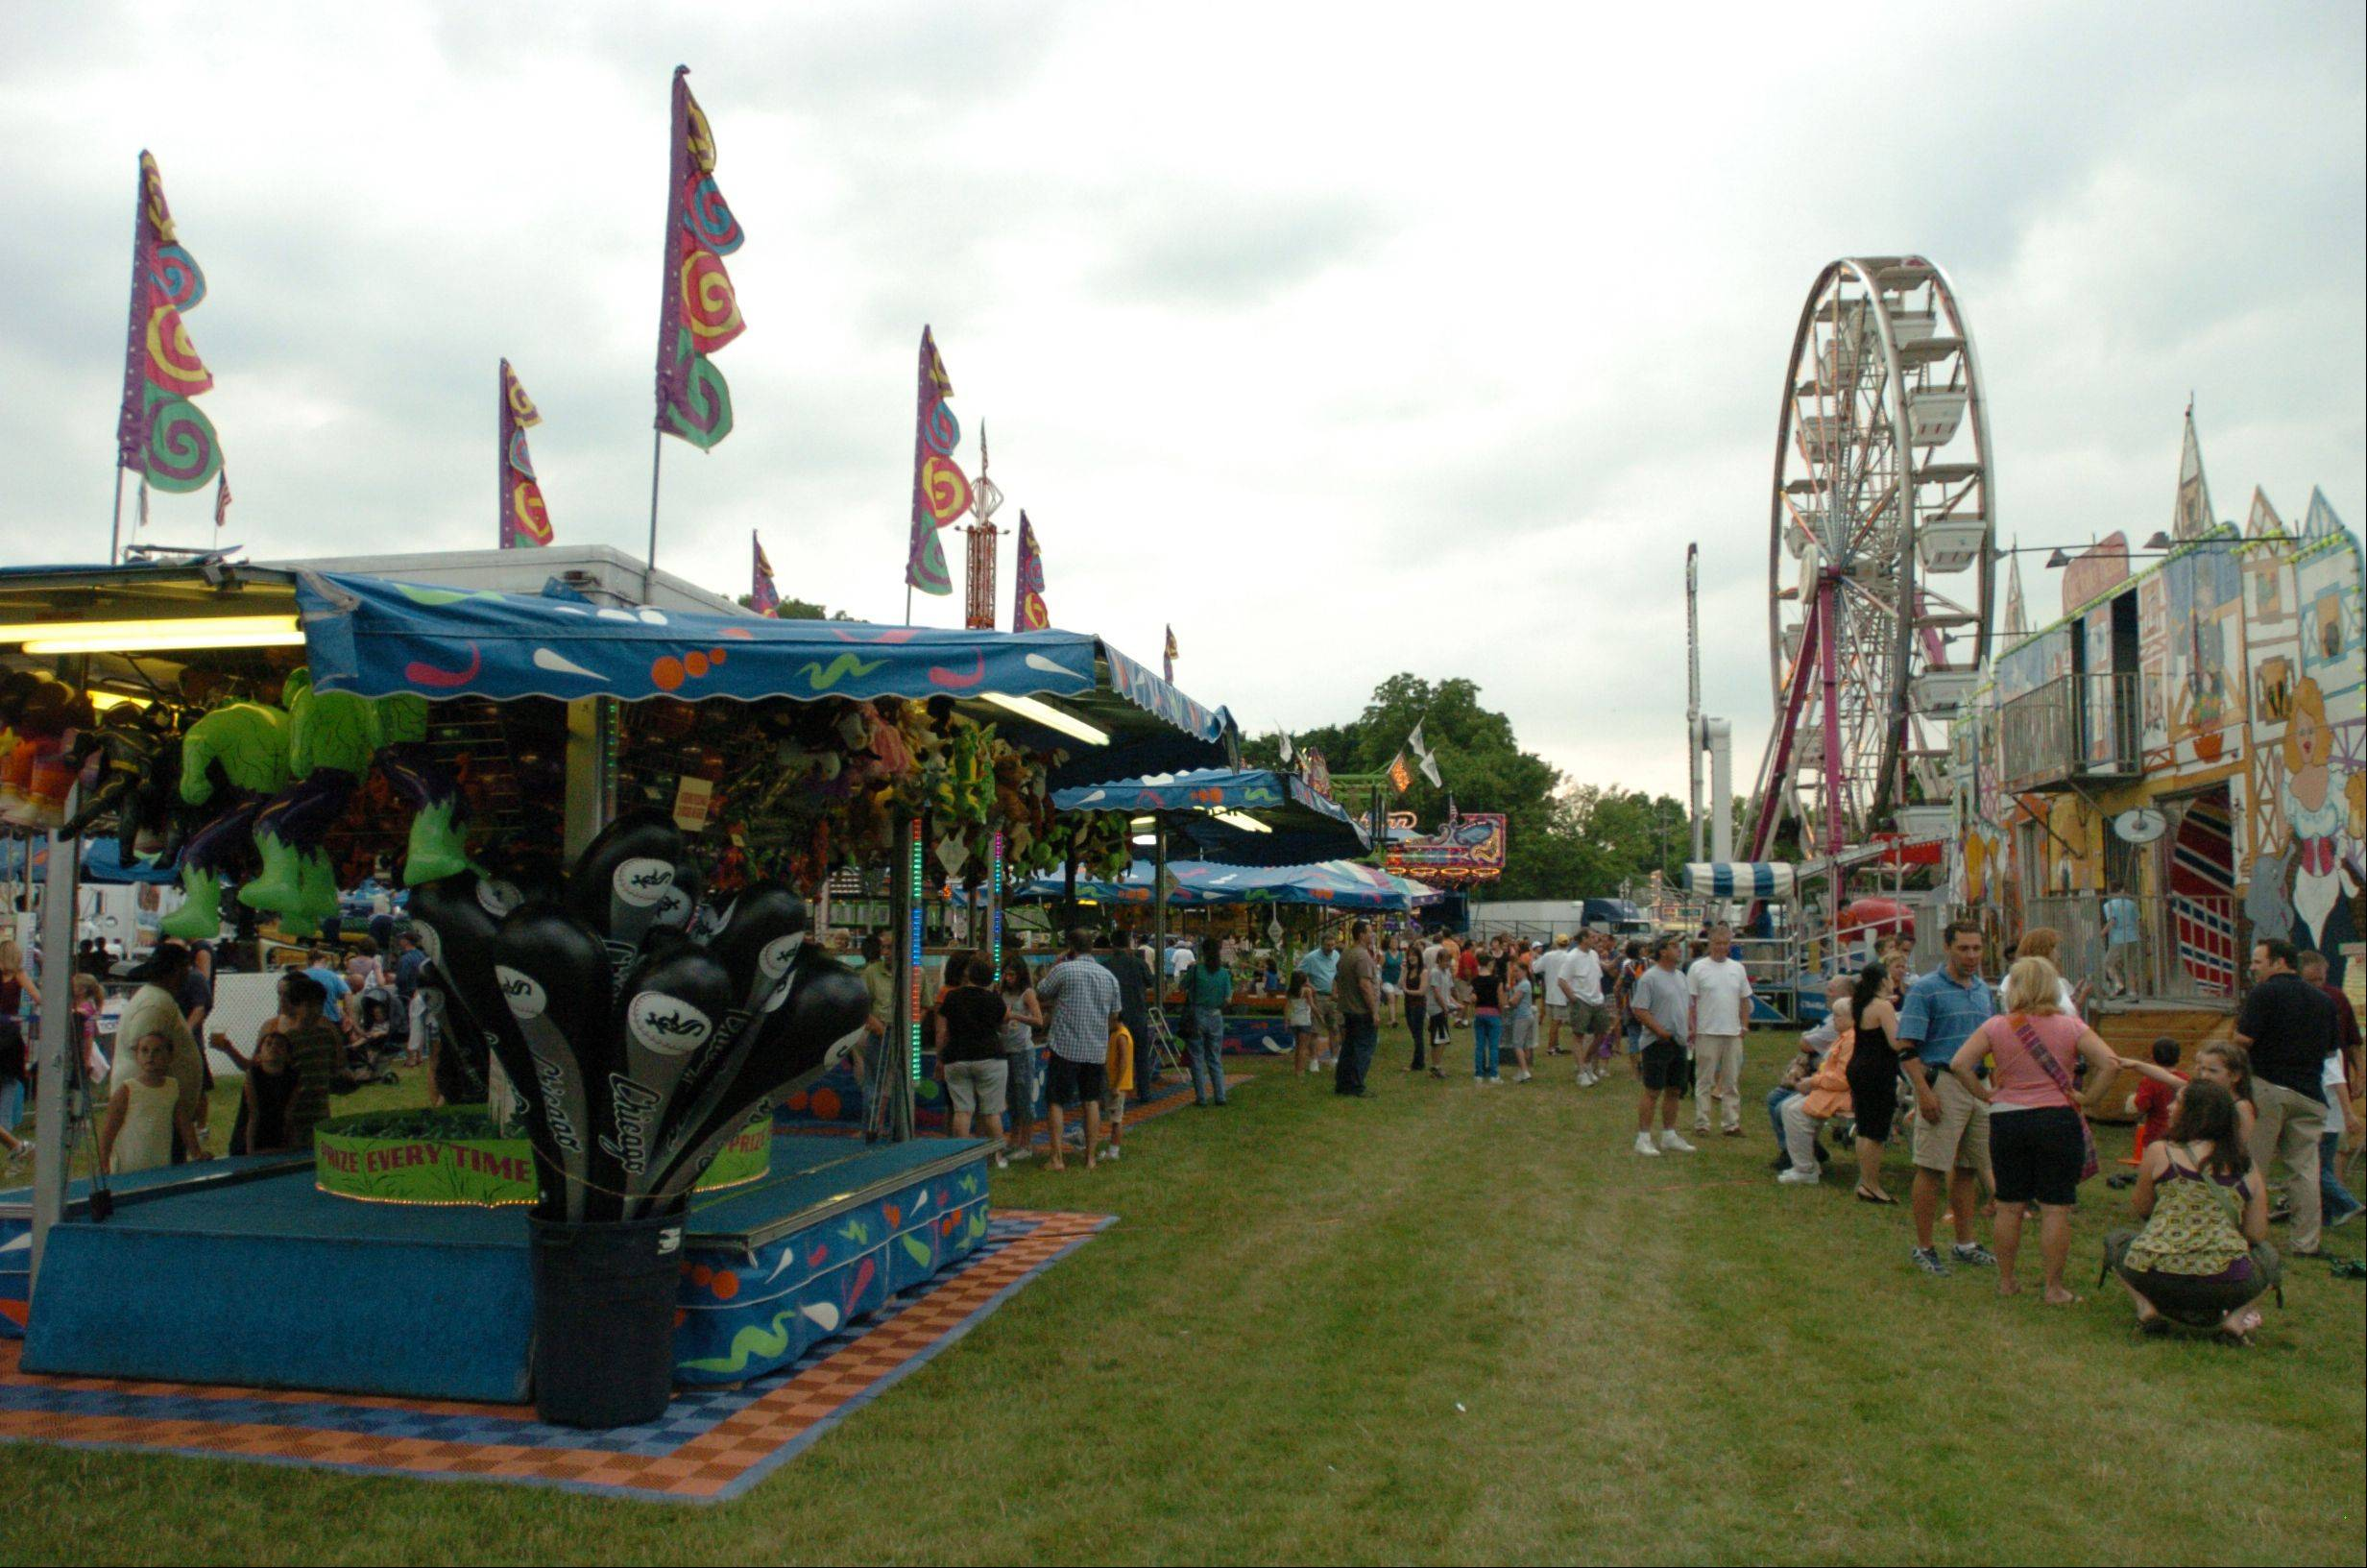 A carnival midway is just one of the diversions awaiting those who attend Itasca Fest, which opens Thursday with a lineup of music, crafts and unique attractions.